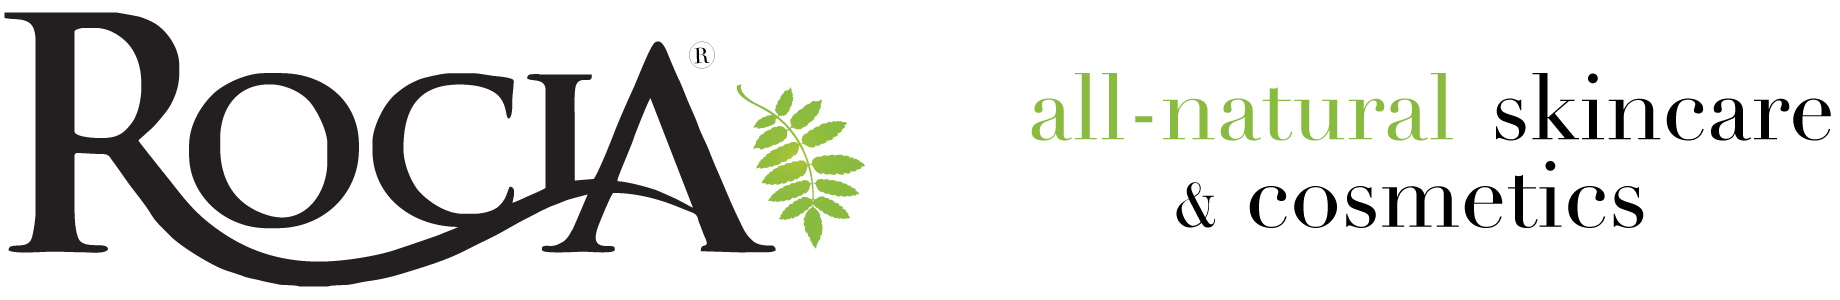 rocia® naturals | all-natural skincare & cosmetics  logo